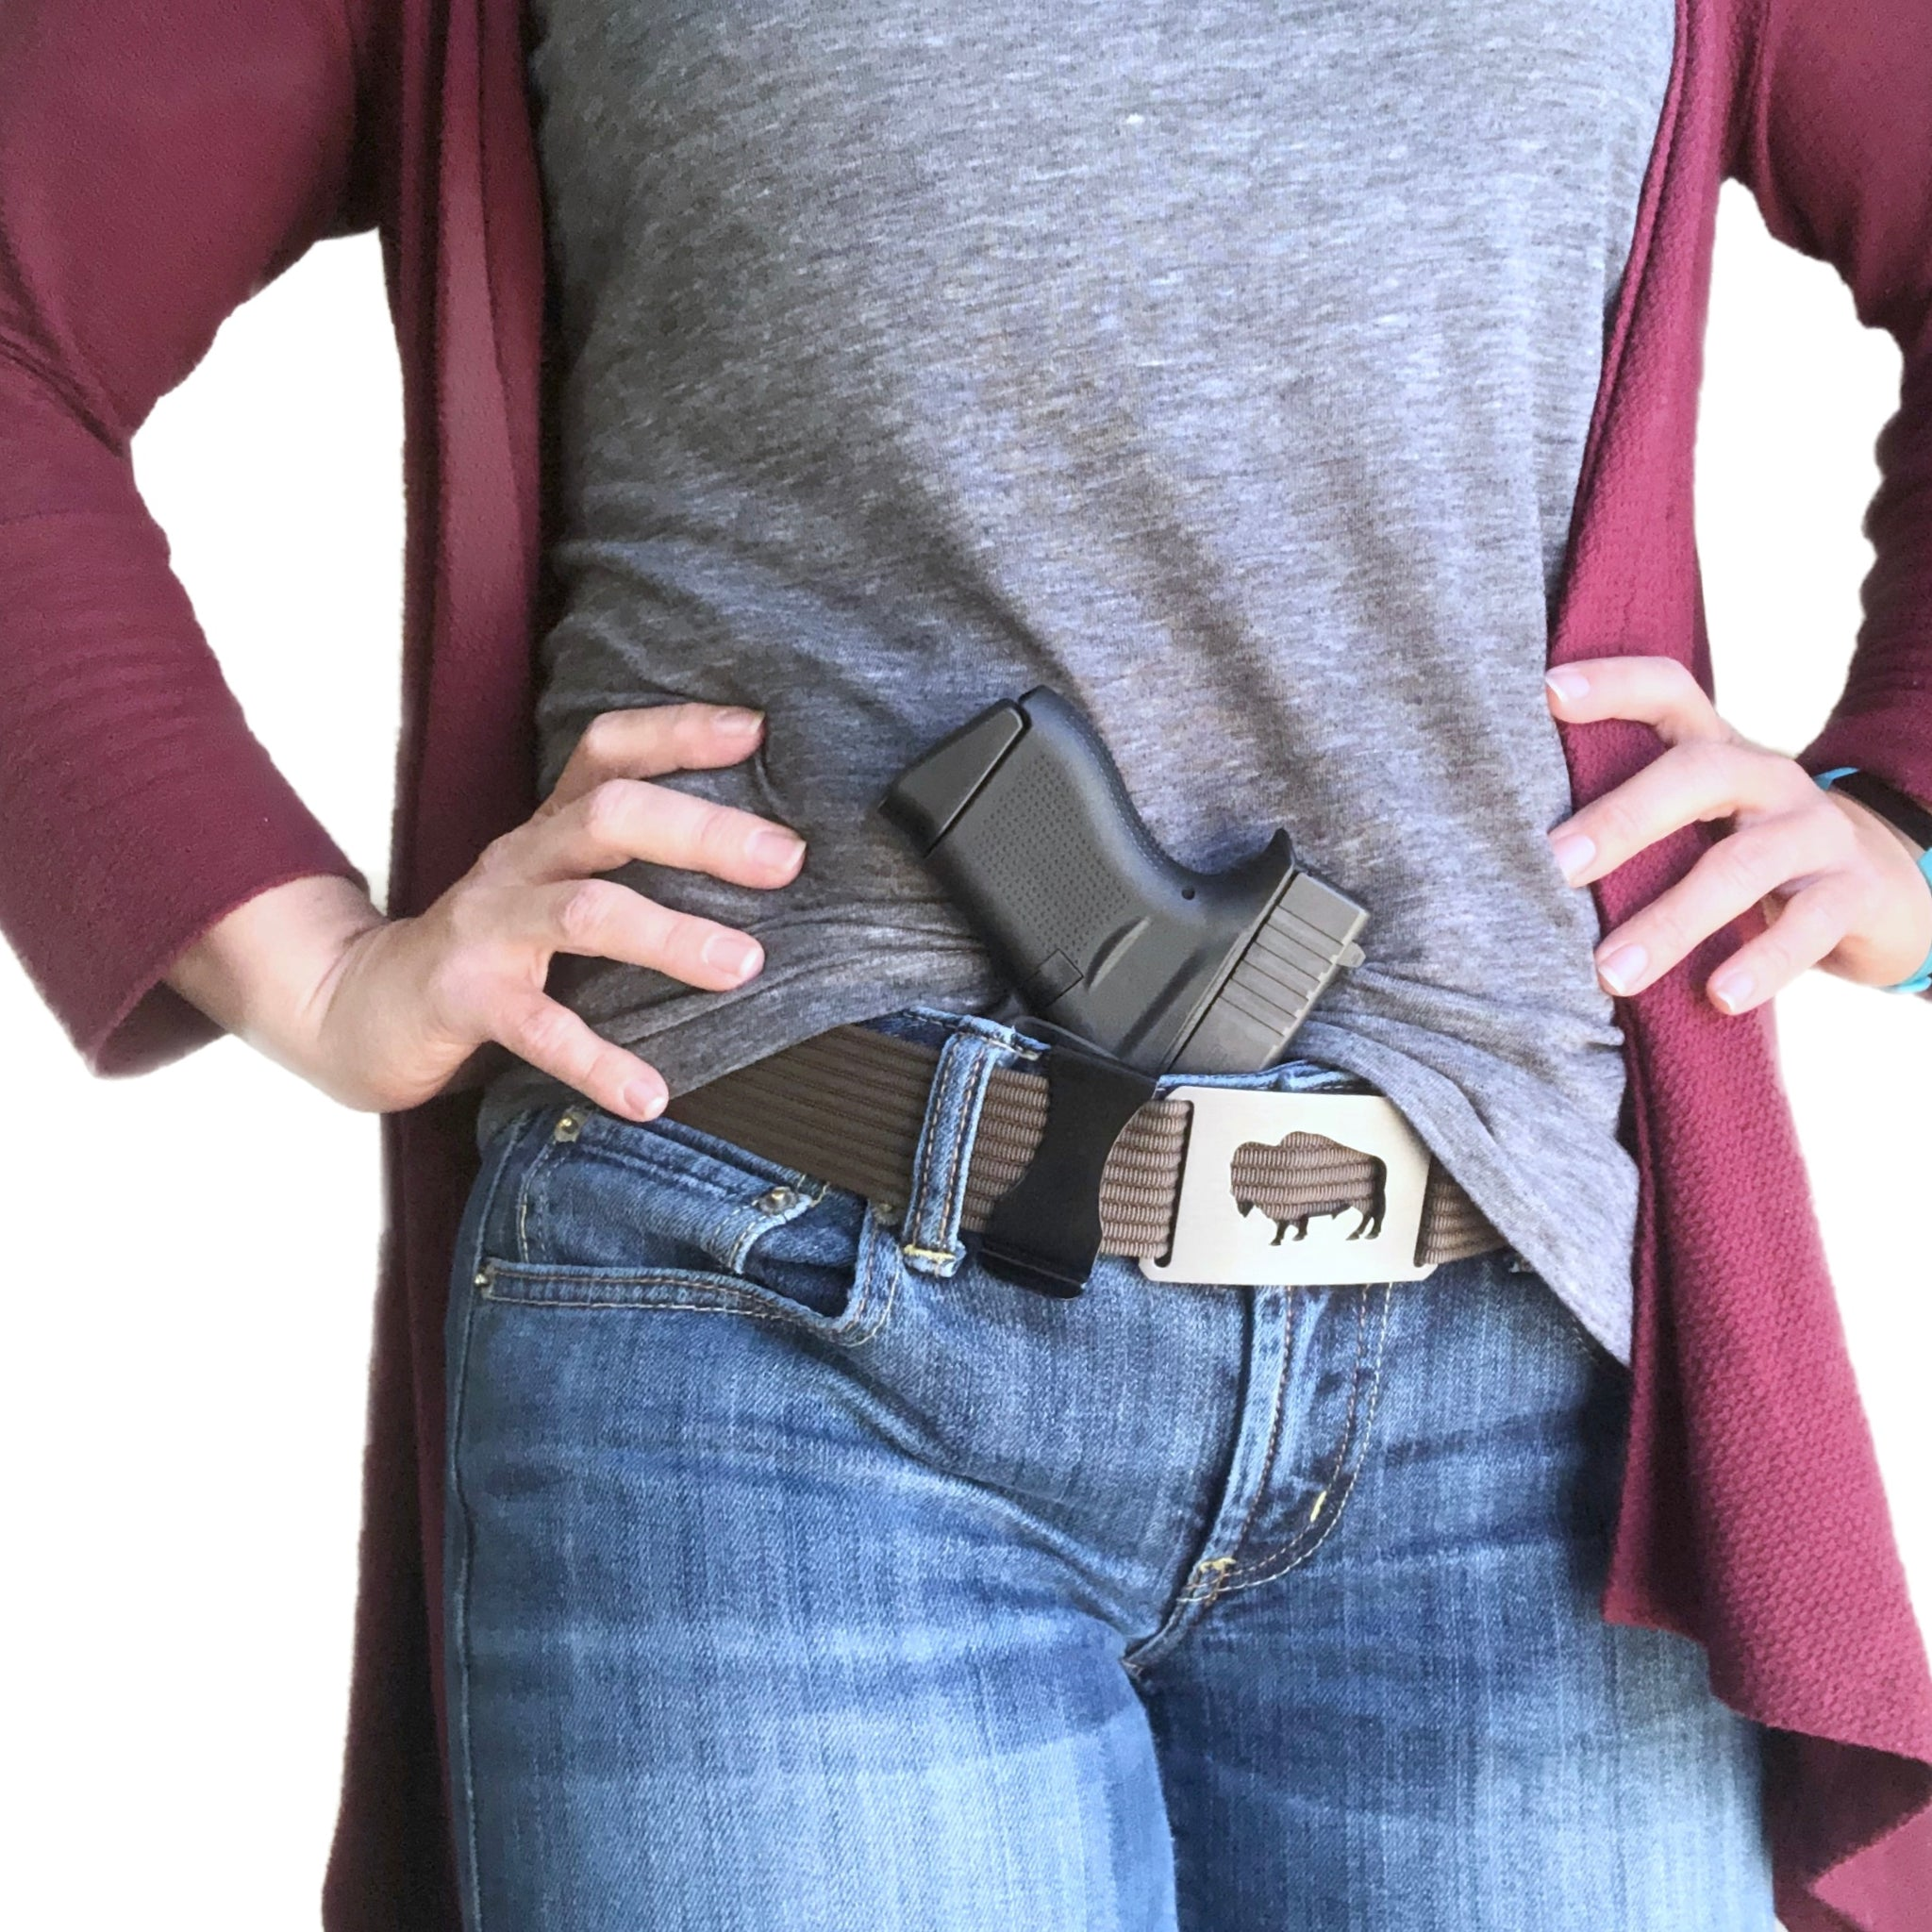 Concealed Carry Holsters for Women